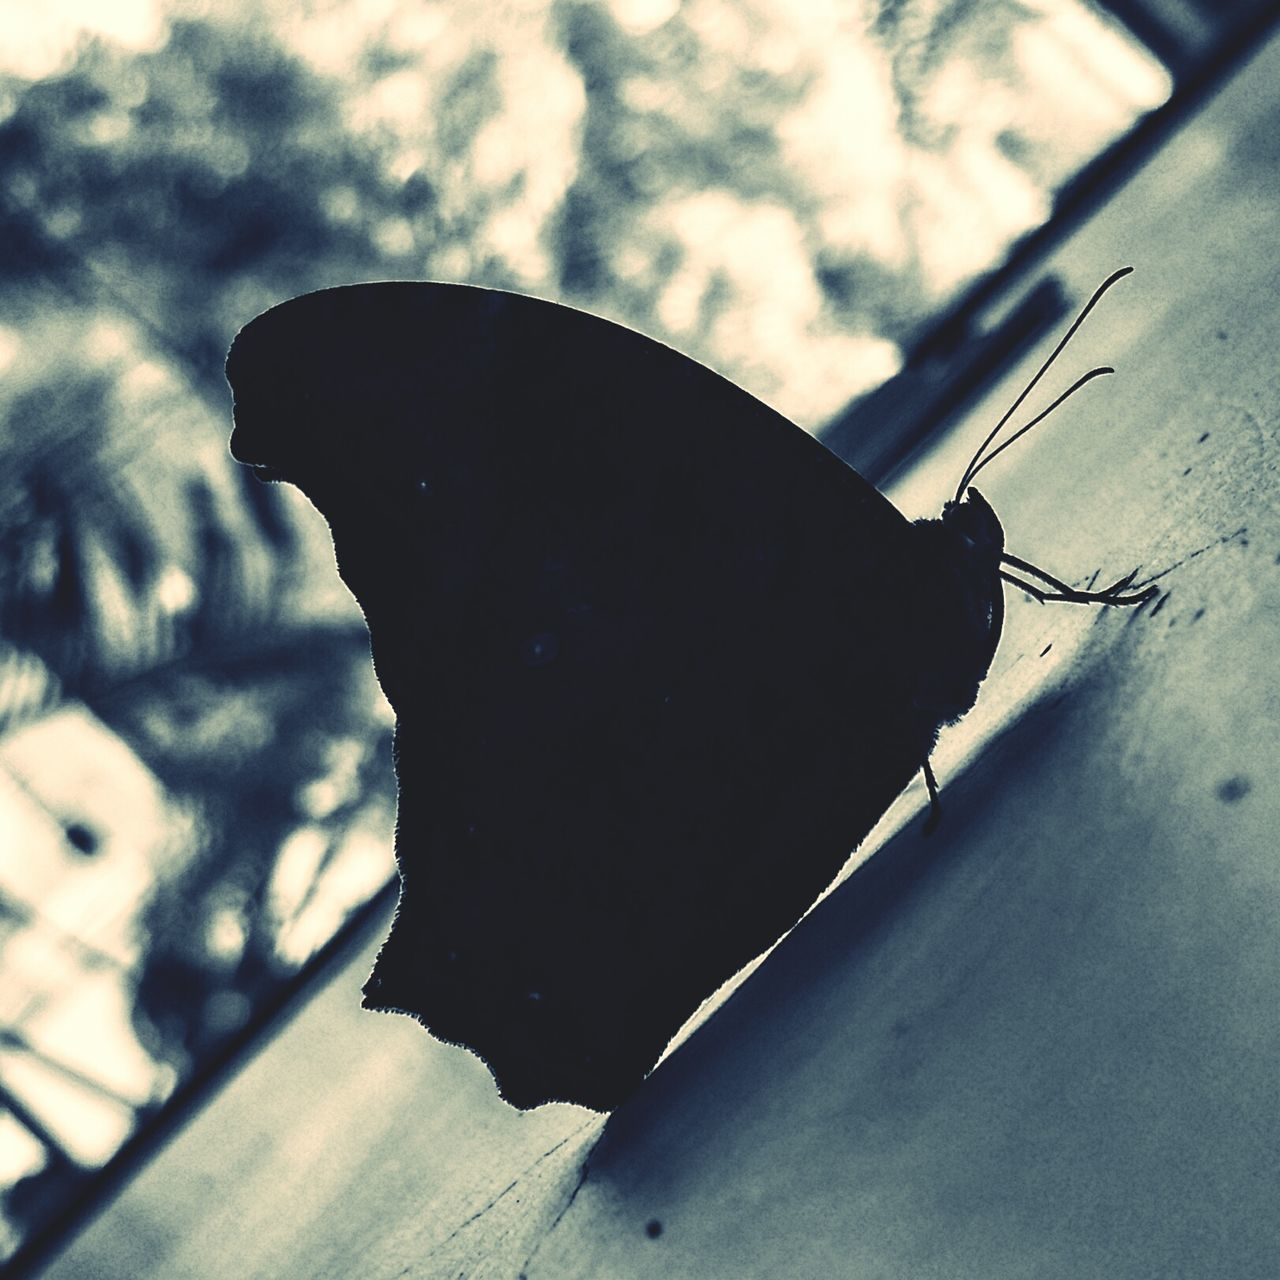 insect, one animal, animal themes, close-up, animals in the wild, no people, day, outdoors, butterfly - insect, nature, fragility